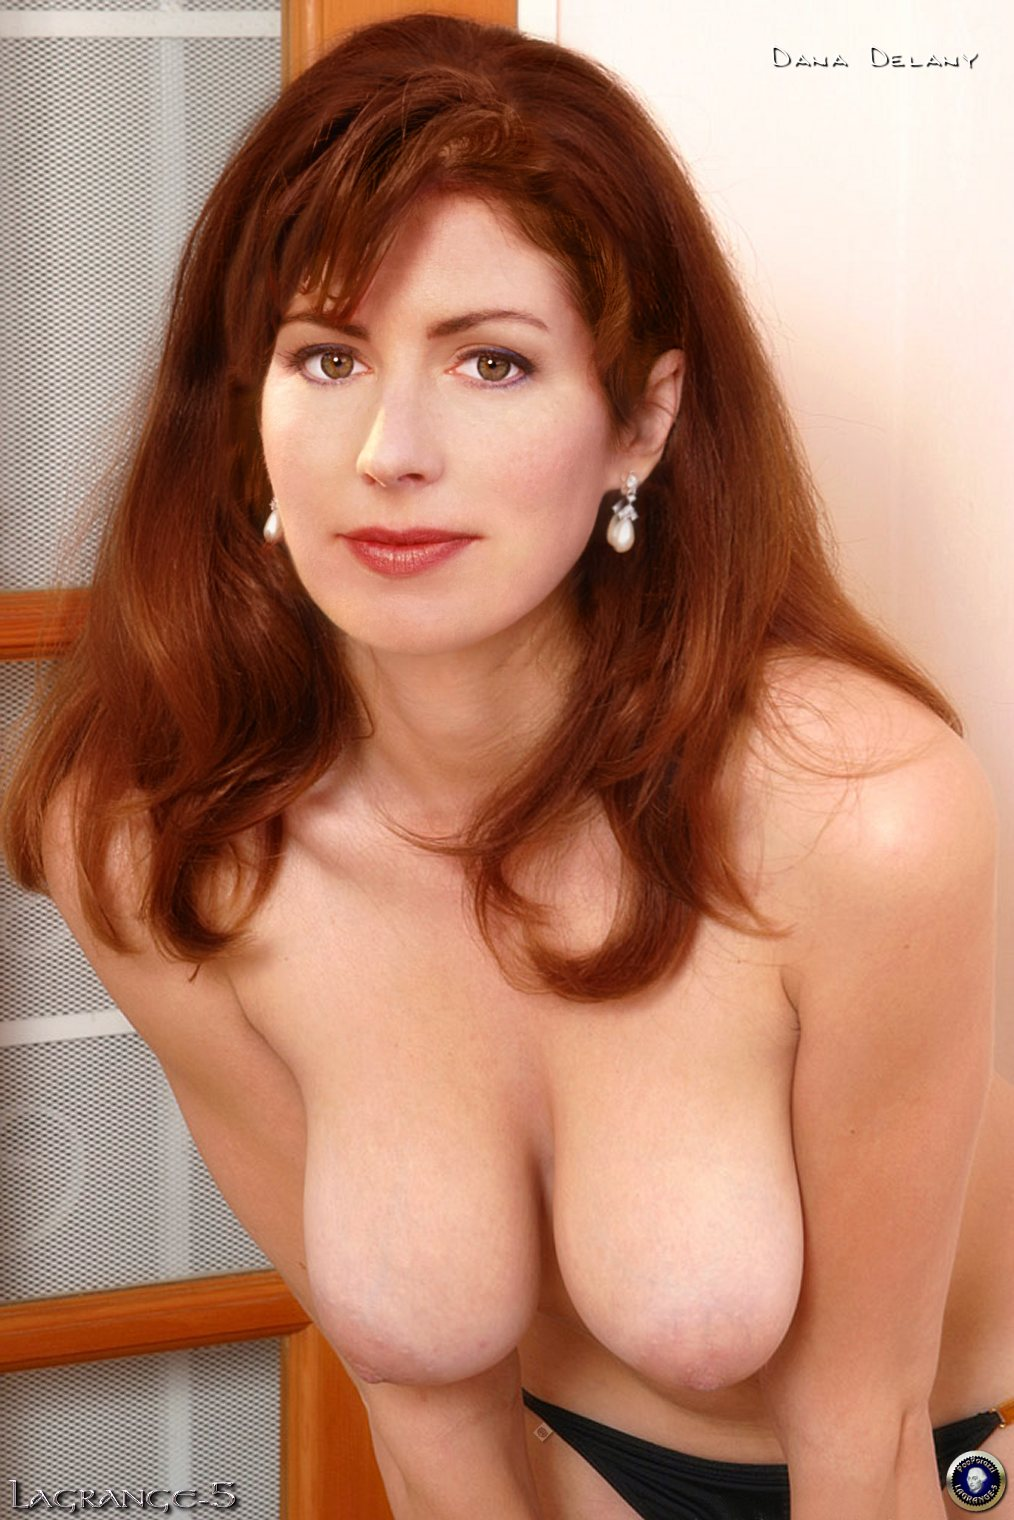 Hot dana delany porn necessary